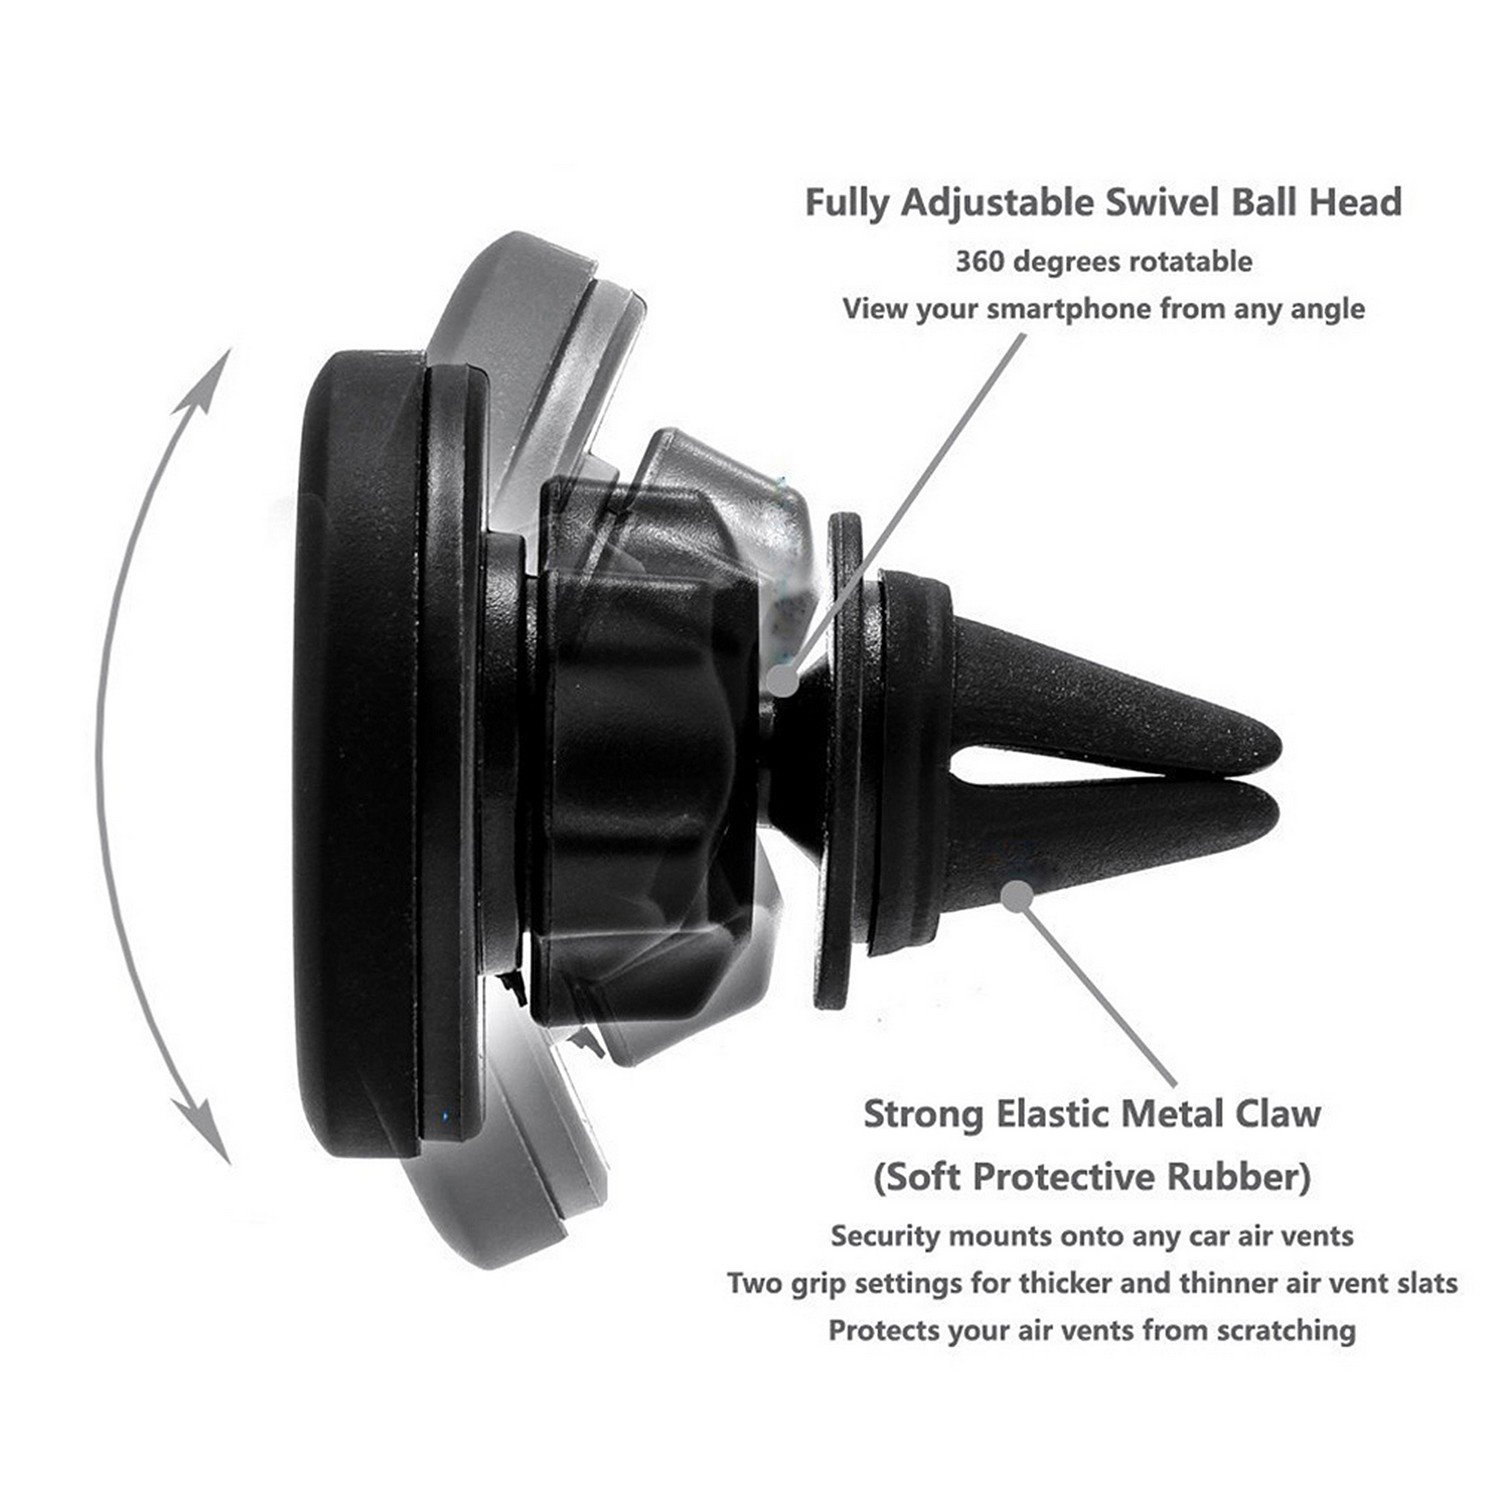 Universal Air Vent Magnetic Car Mount Holder for Smartphones including Iphone 7 Samsung Galaxy S7 Black Beyond Cell 4351576167 6 S7 Edge and Mini Tablets 6S